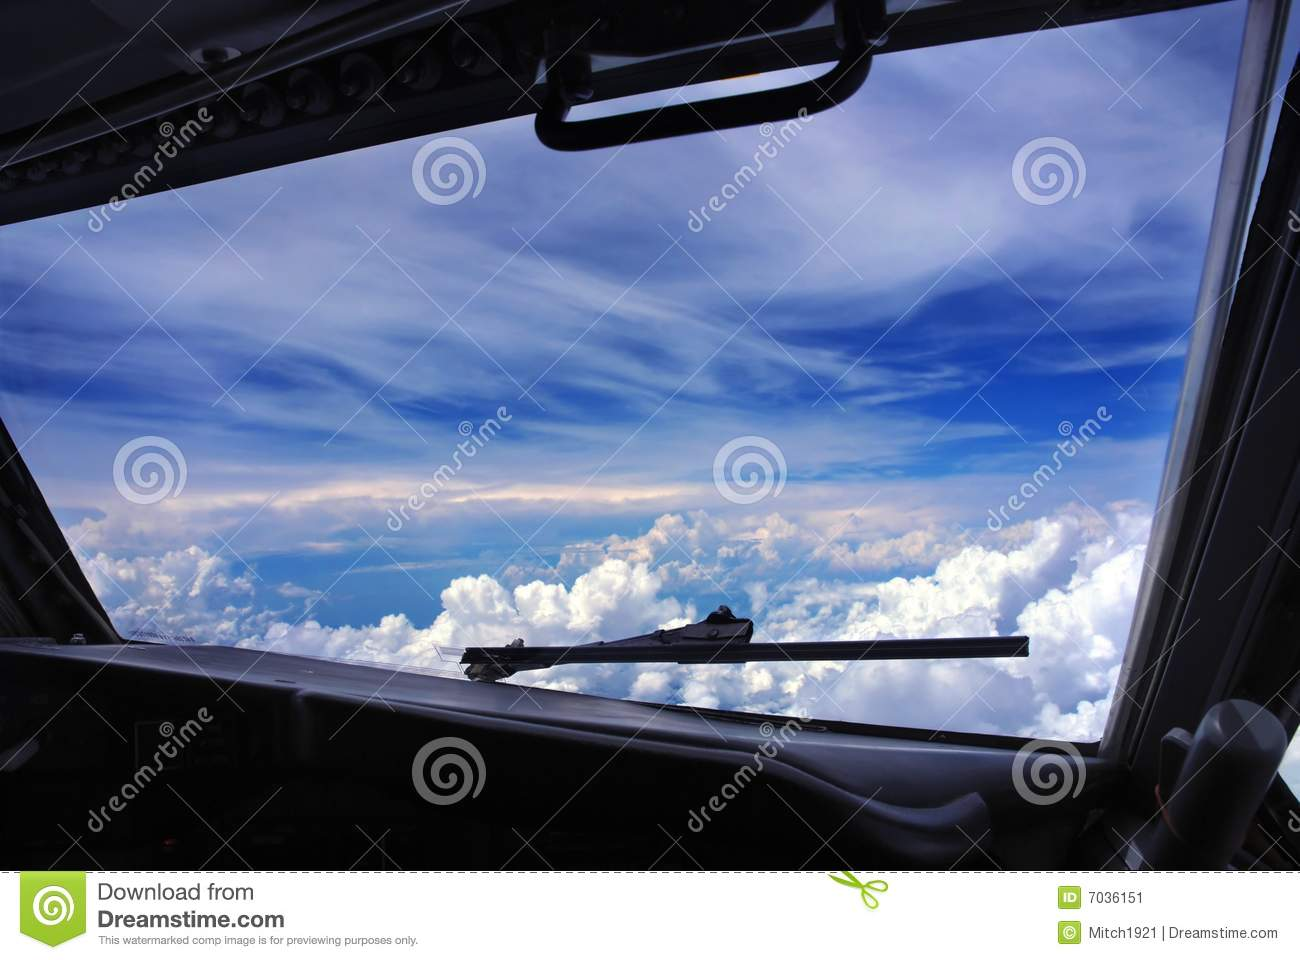 Airplane cockpit window stock image image of for Airplane cockpit wall mural